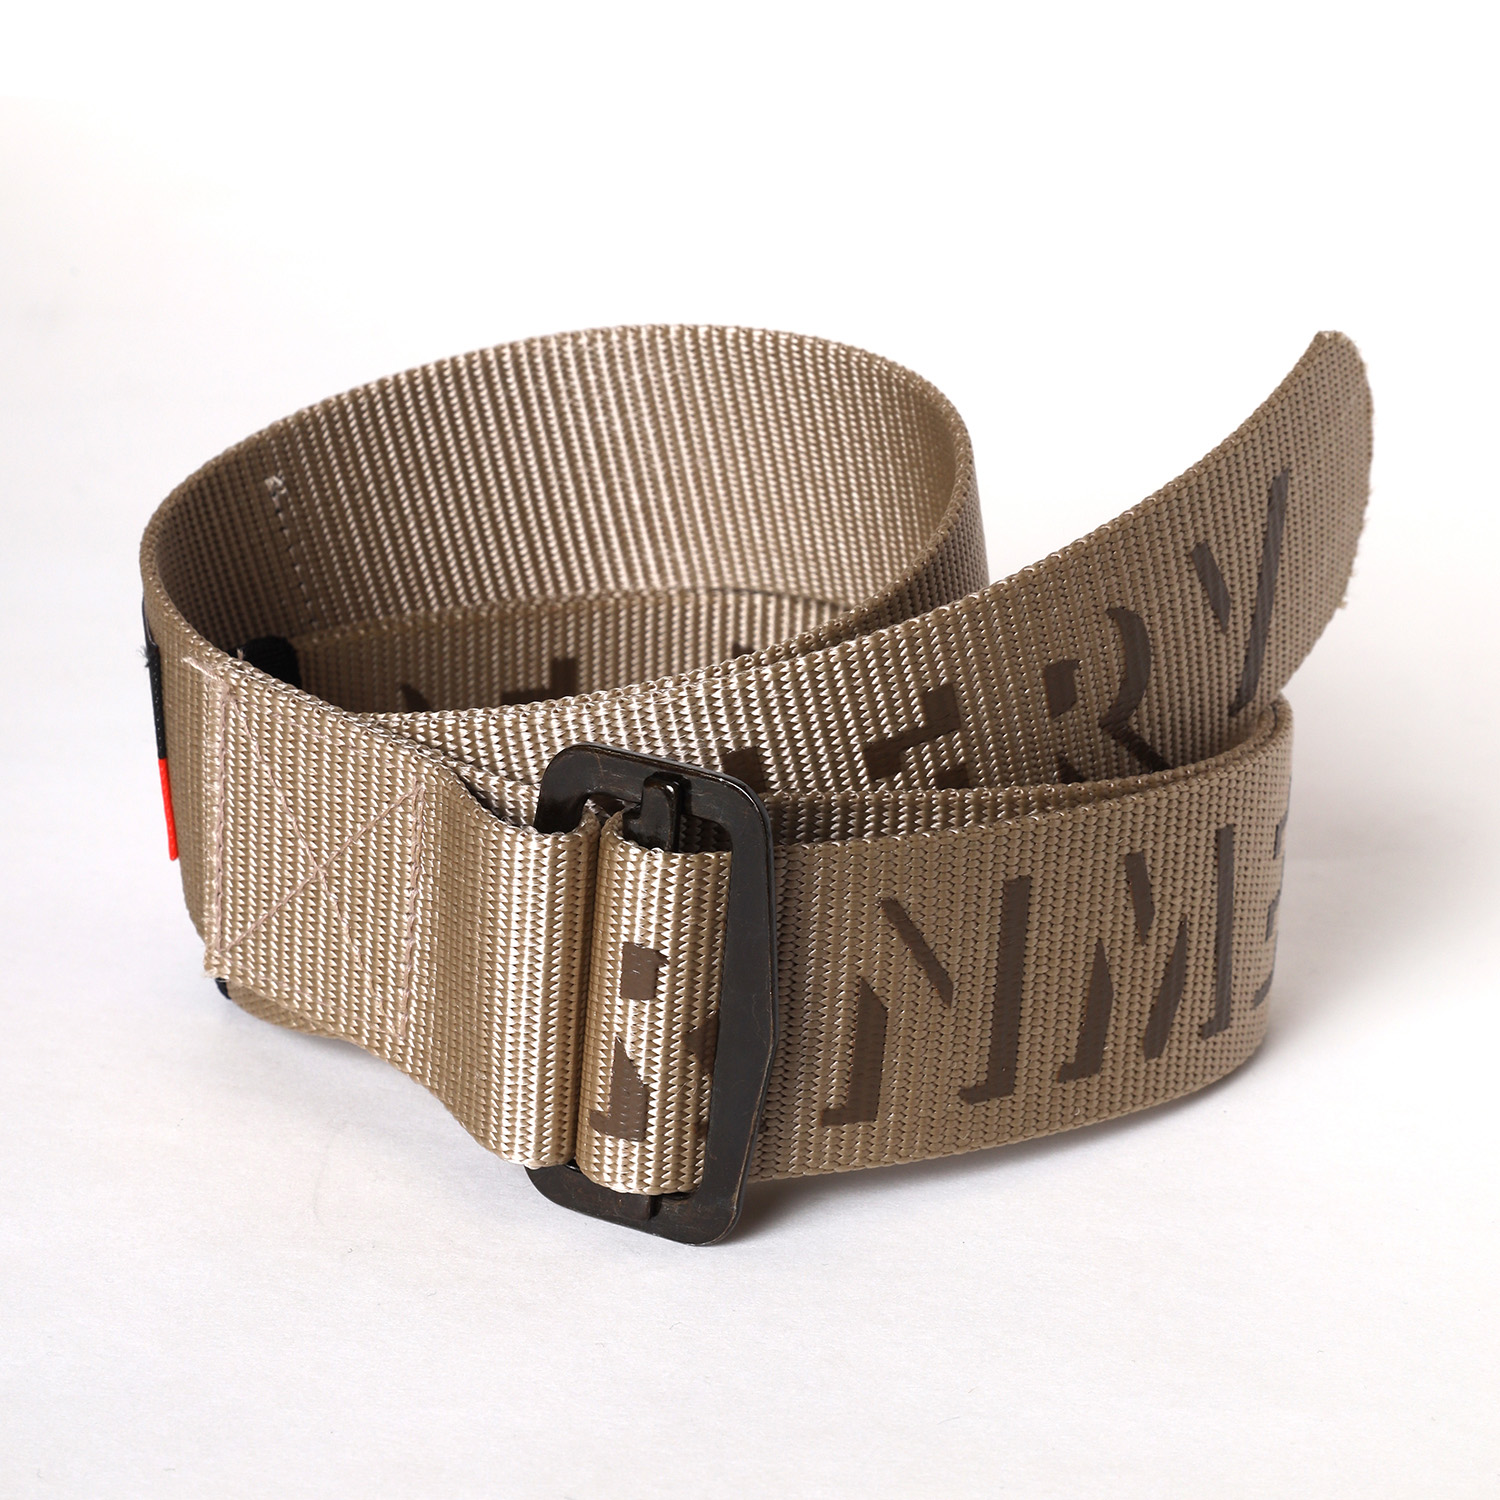 NERV ARMY LOGO BELT β (COYOTE BROWN)